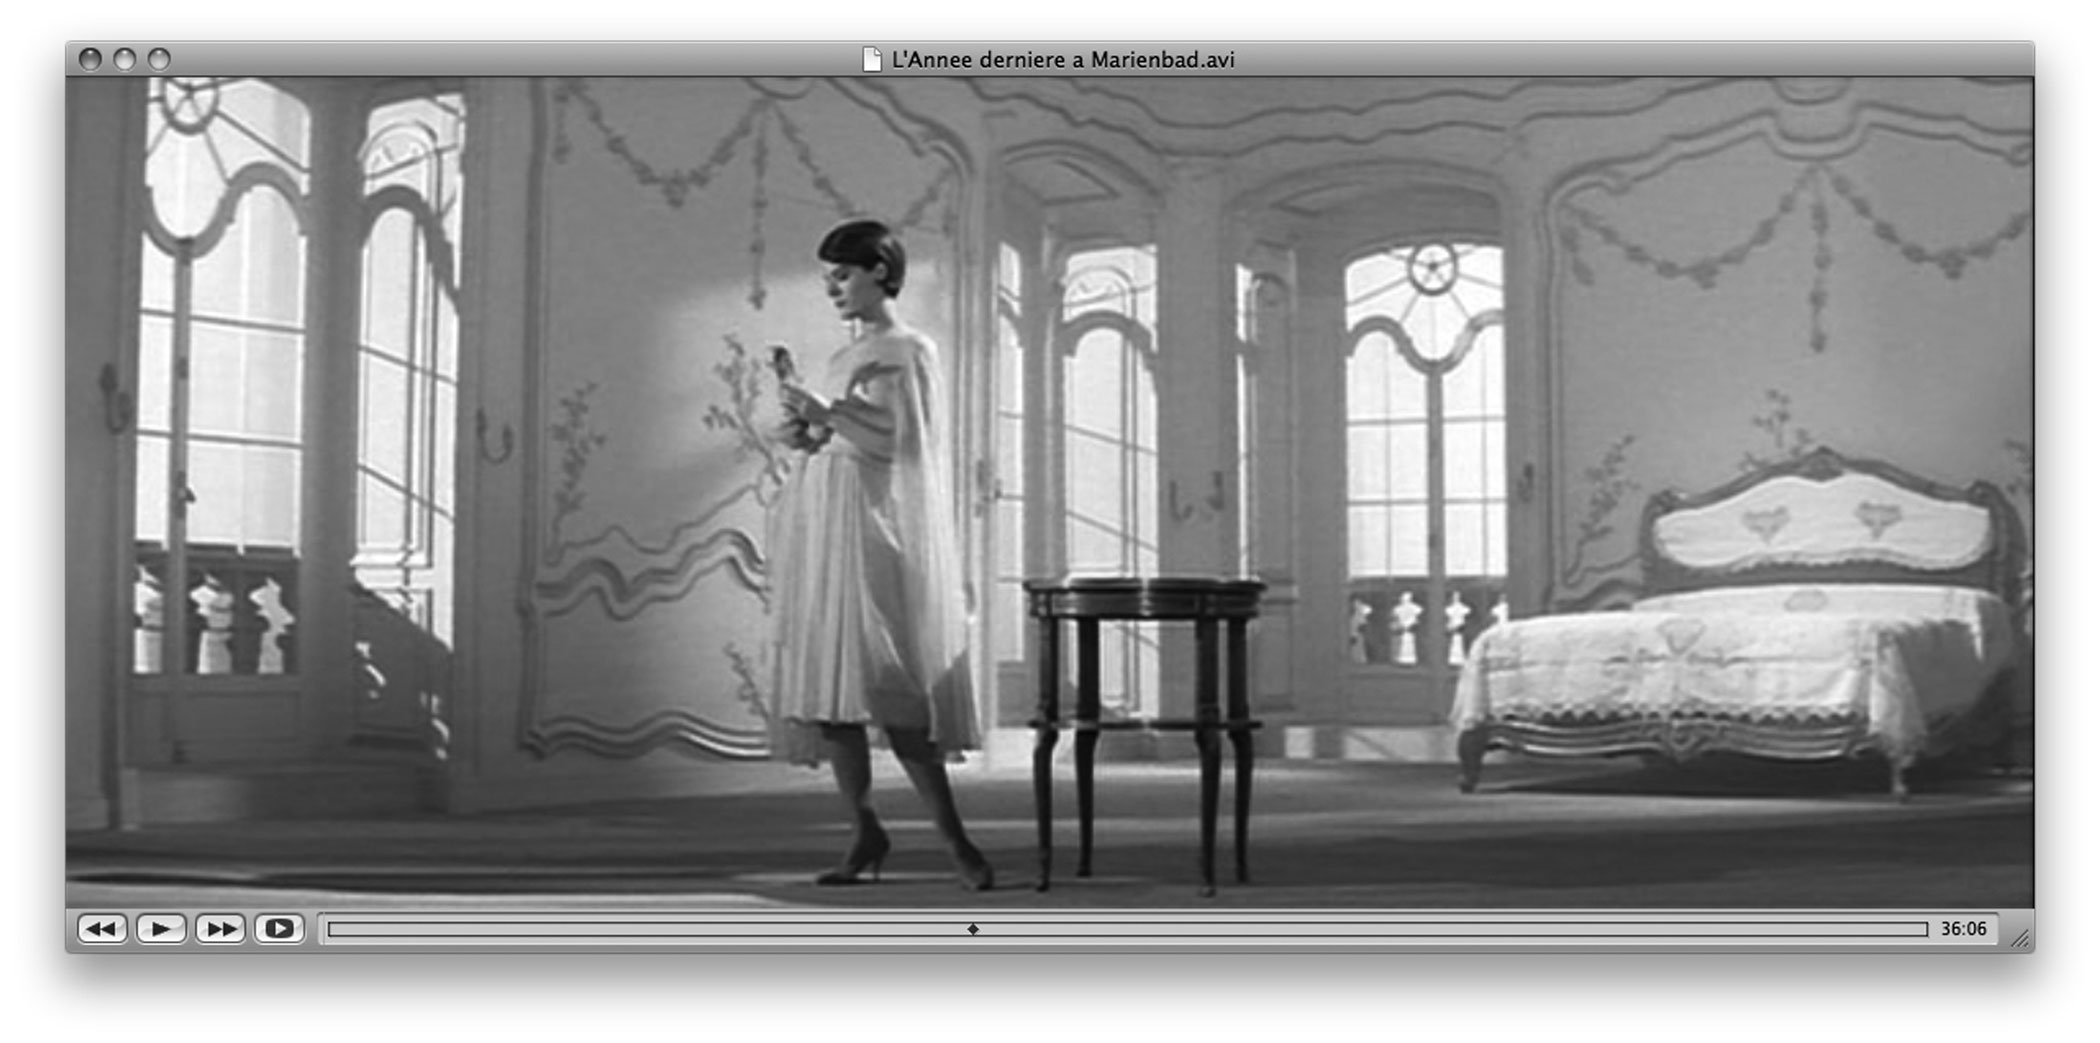 screenshot_marienbad2